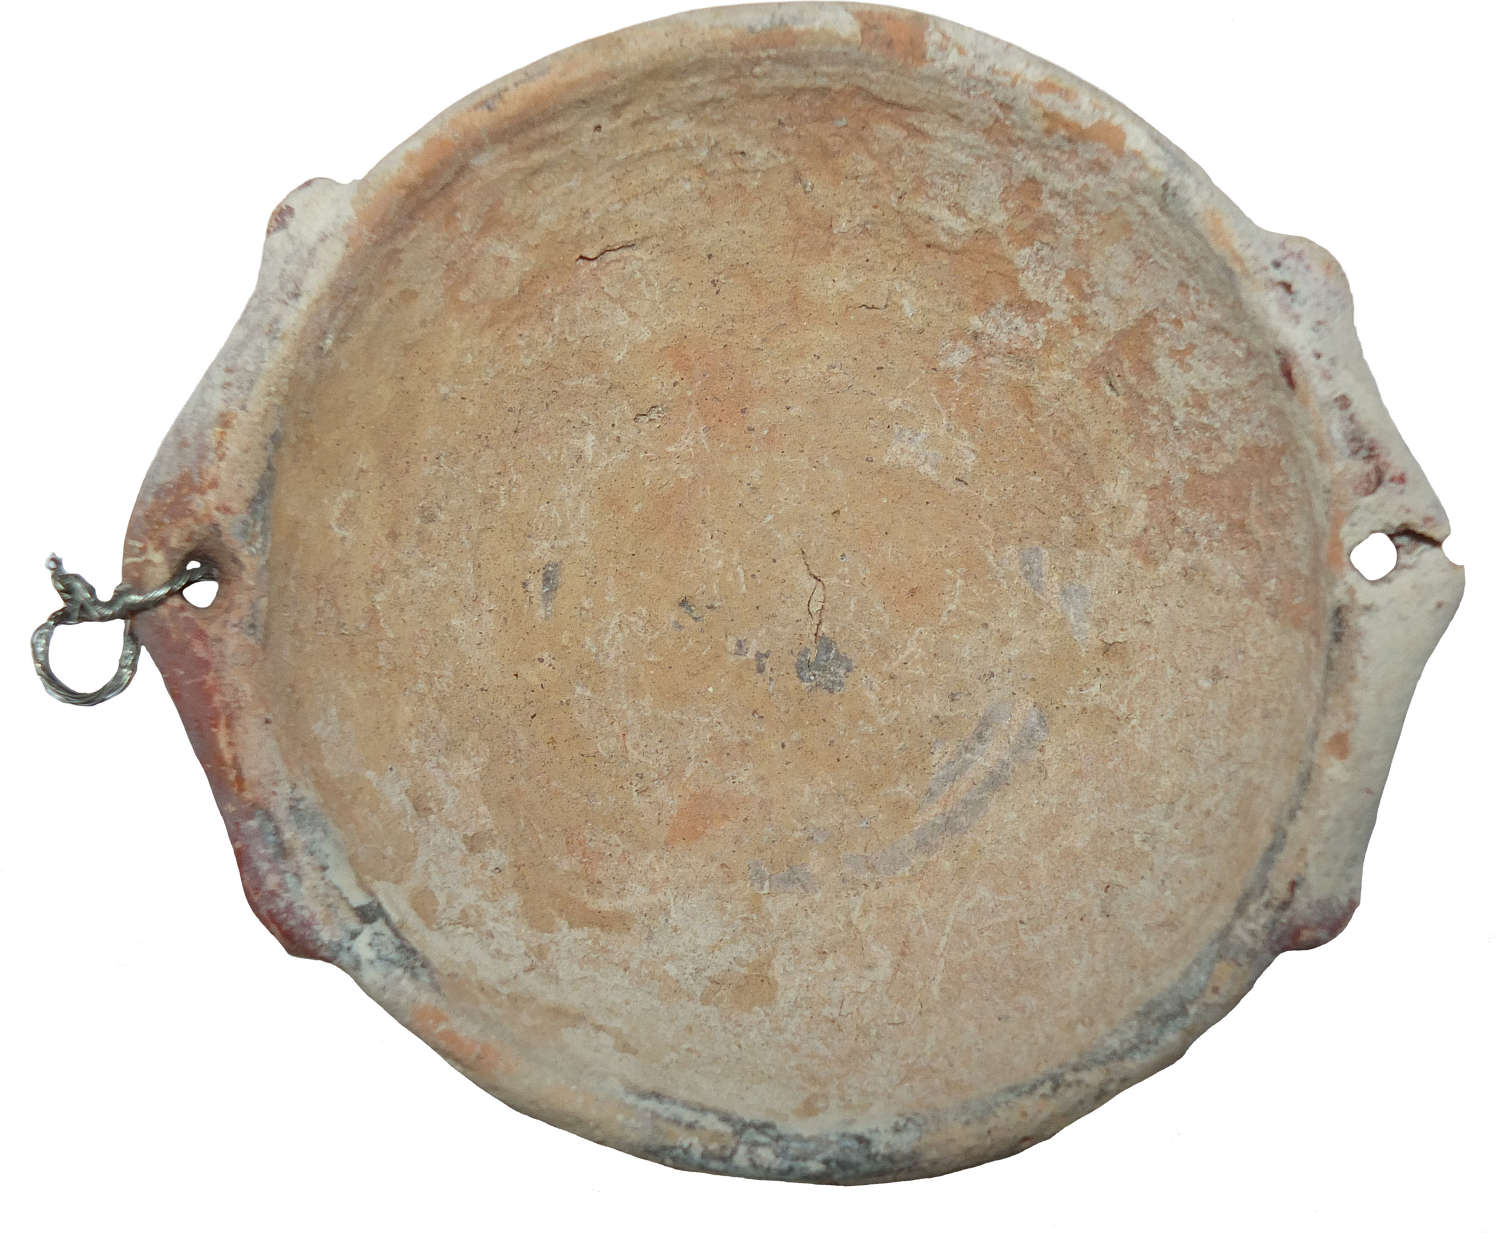 A small Cypriote shallow dish in Bichrome Ware, c. 750-475 B.C.